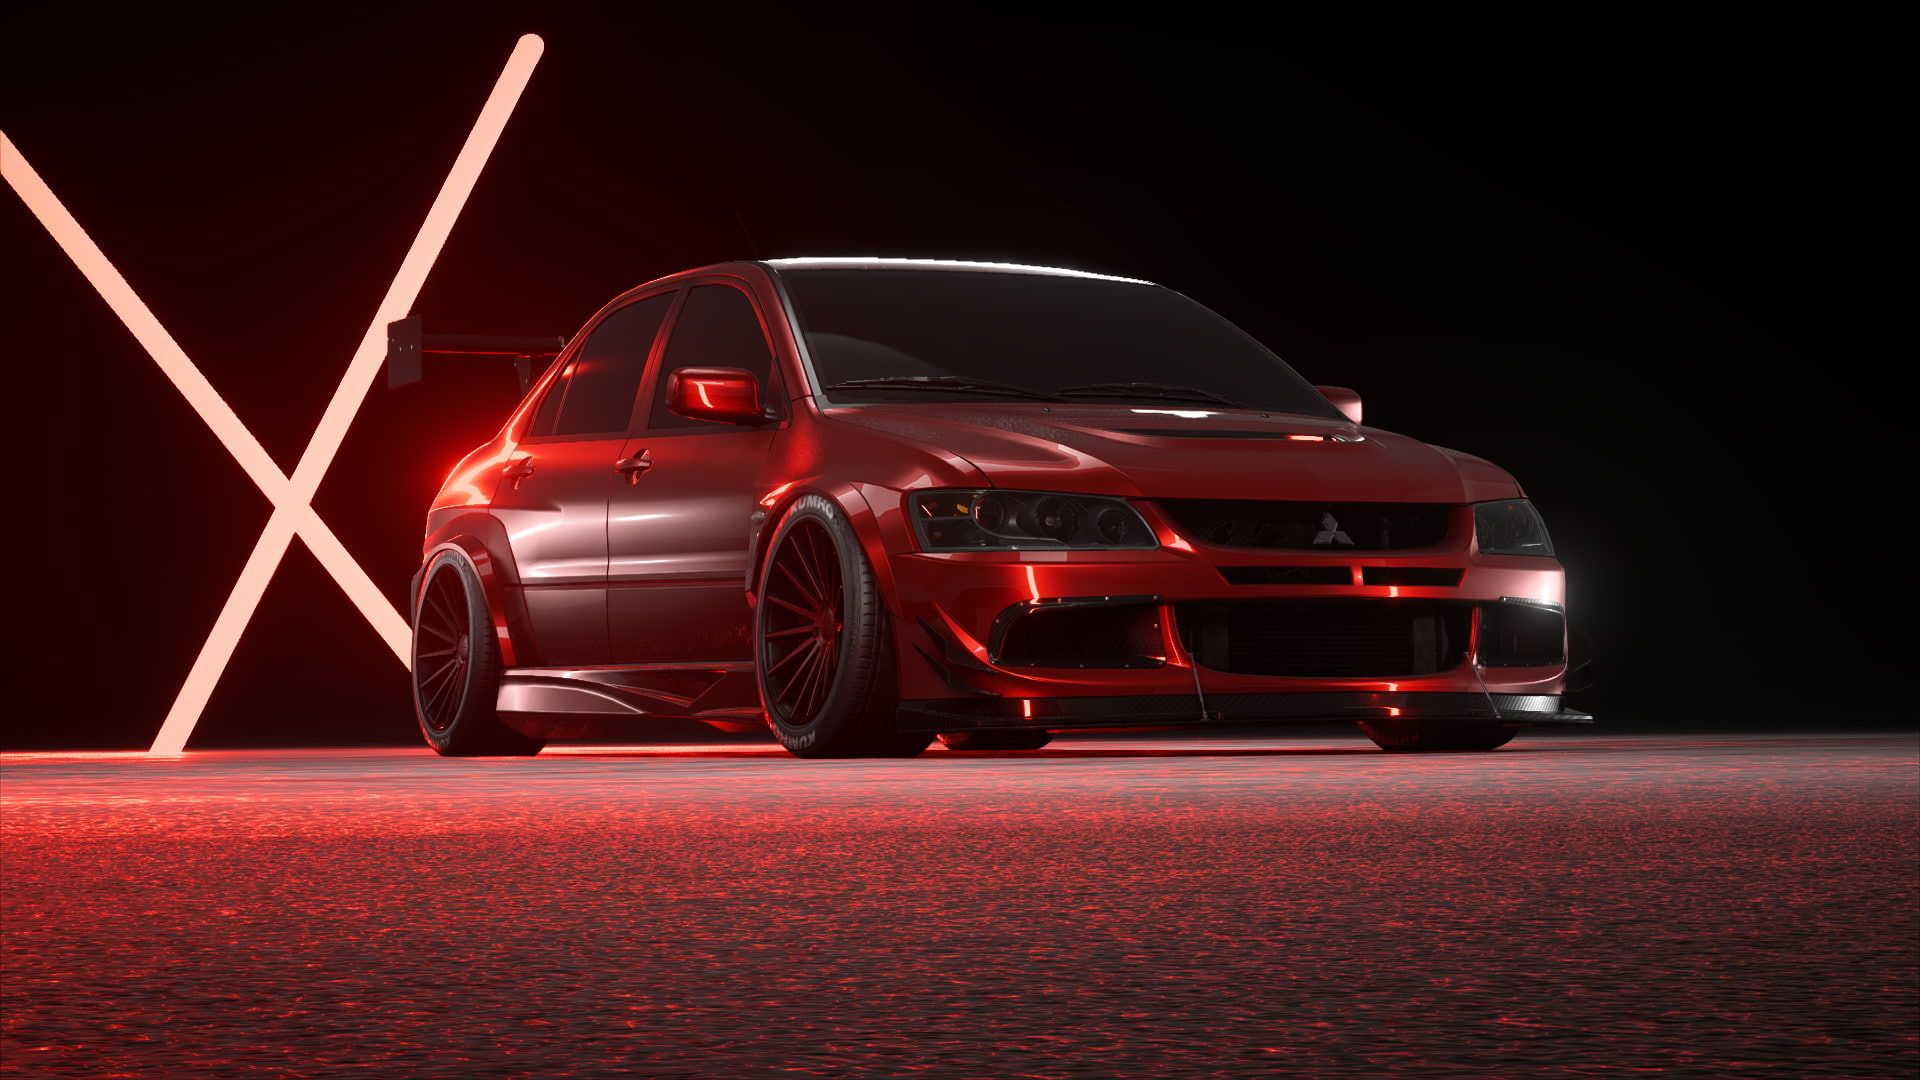 Evo Mitsubishi Lancer Evo X Red Need For Speed Car Need For Speed Payback Red Cars Vehicle 1080p Wallpaper Hdwall Mitsubishi Lancer Evo X Mitsubishi Evo